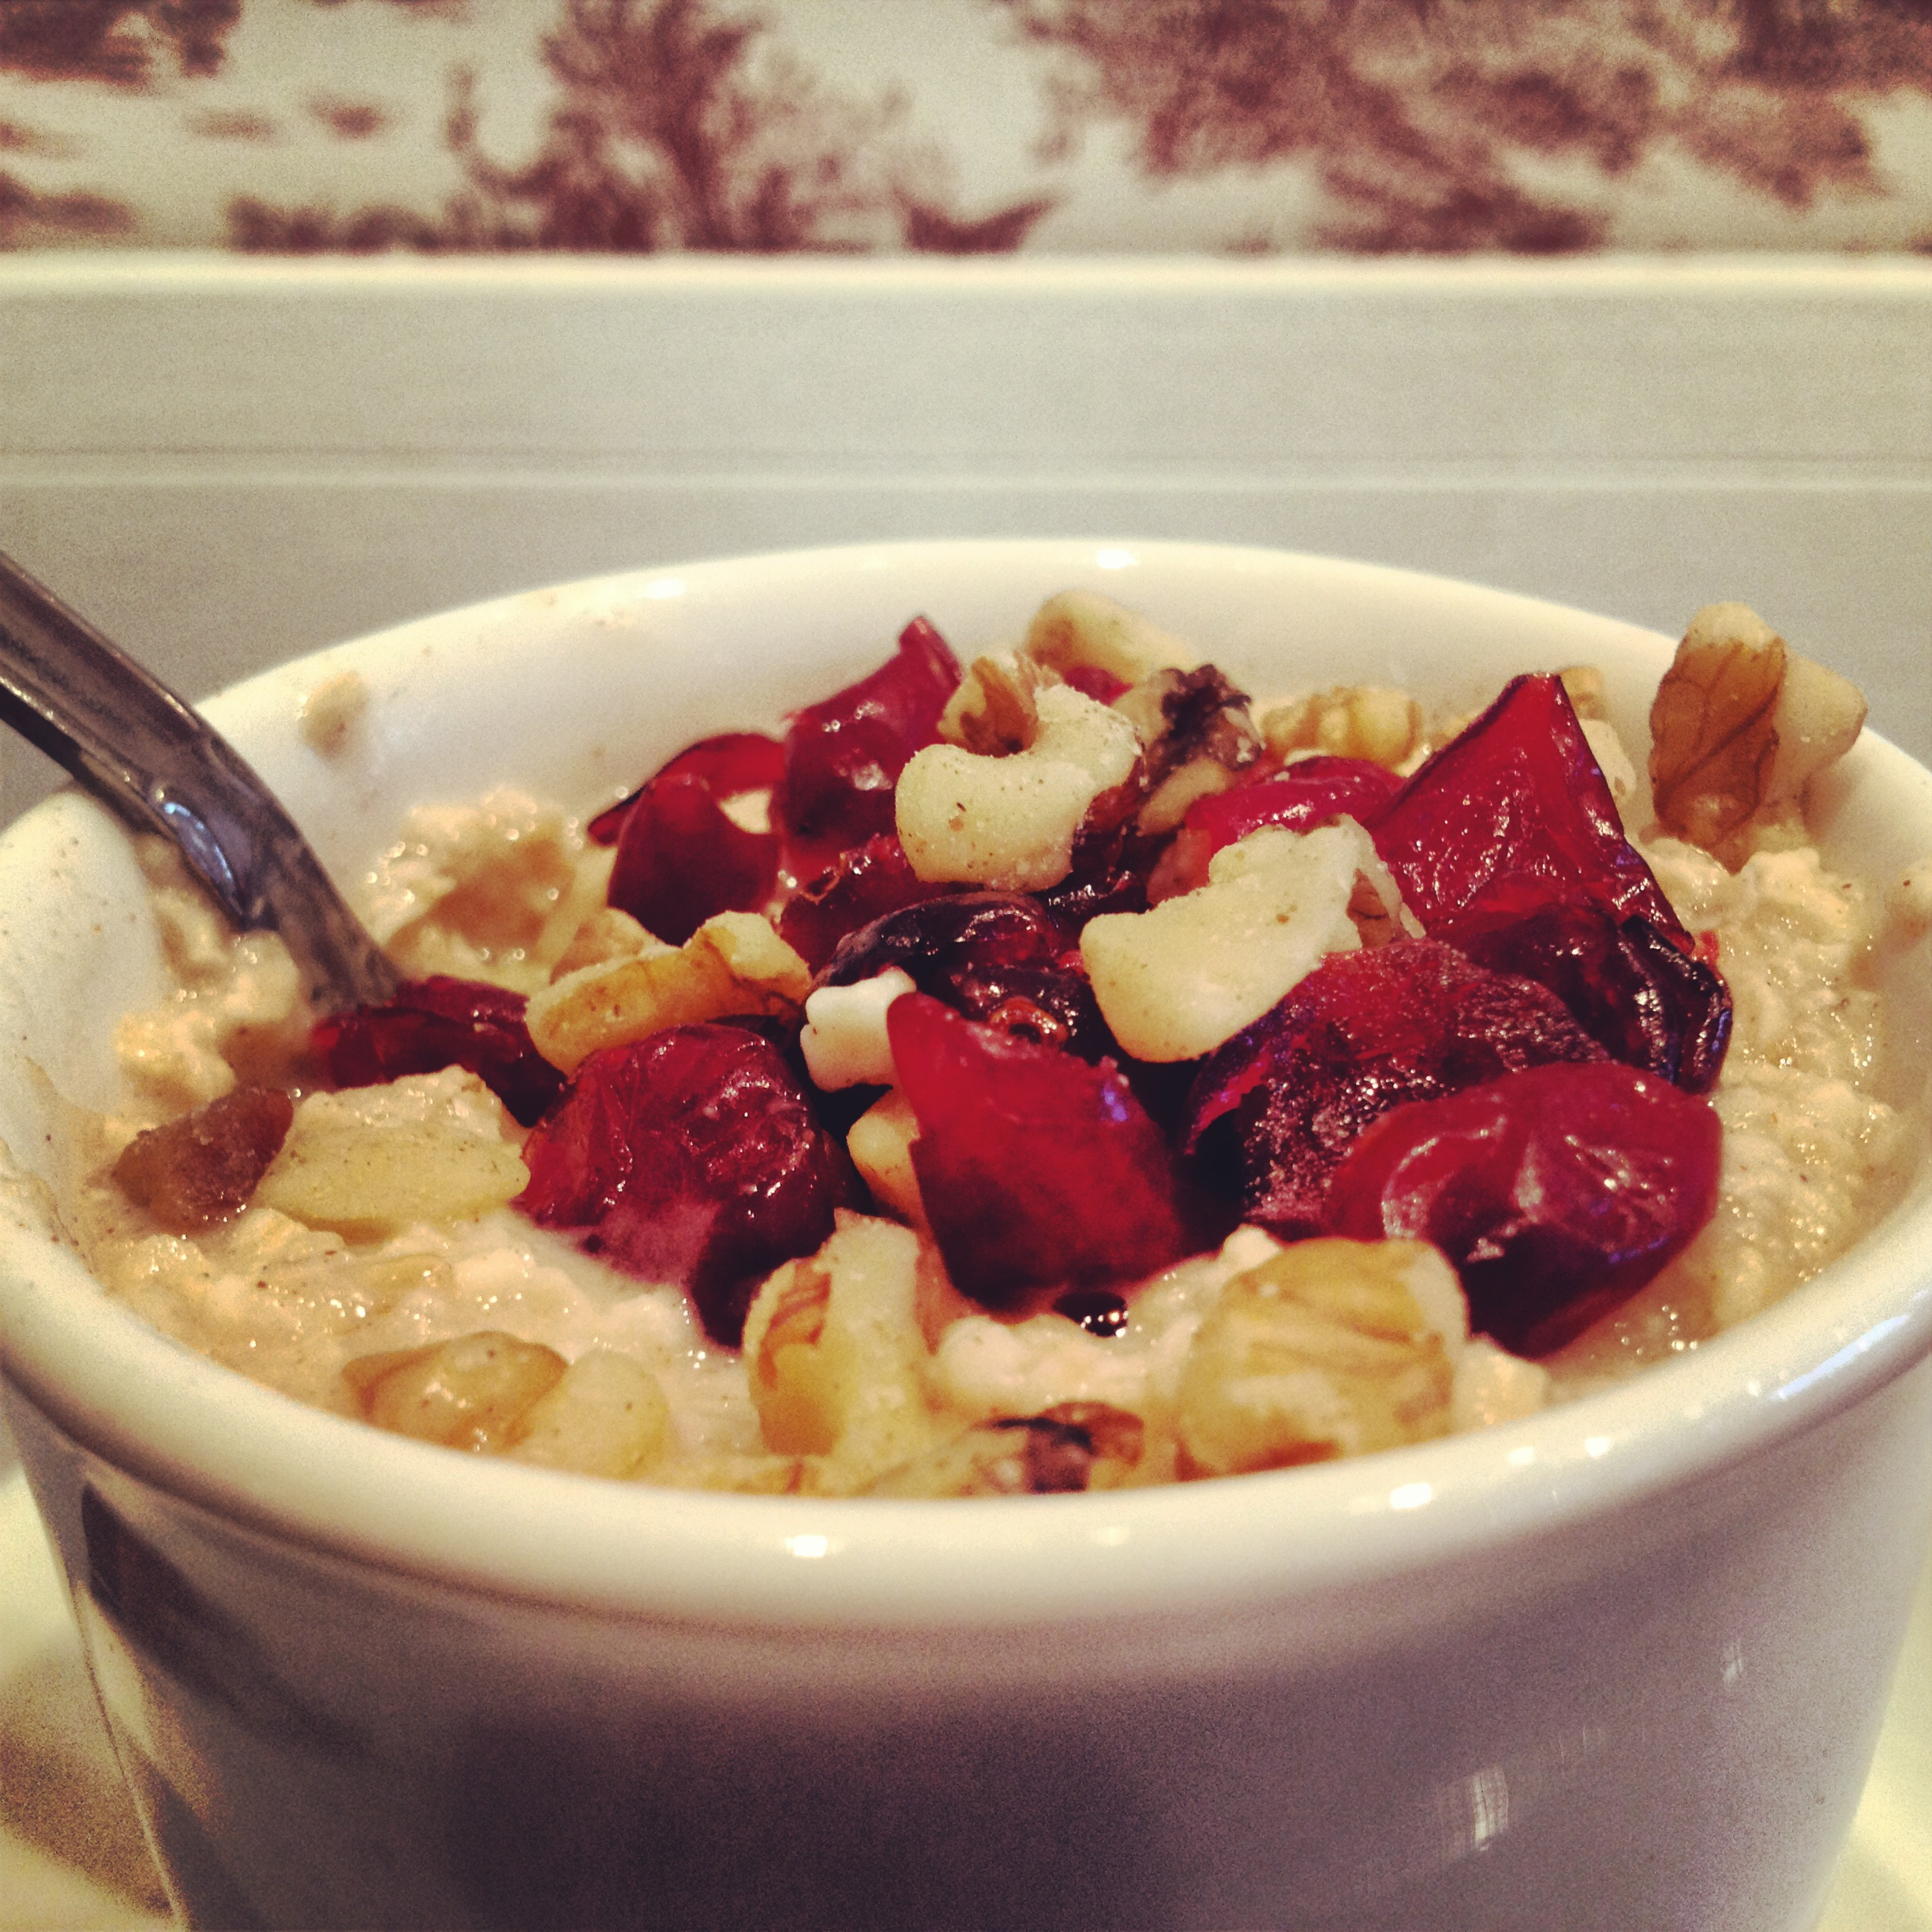 Apple-cinnamon oatmeal with cranberries and walnuts!!!